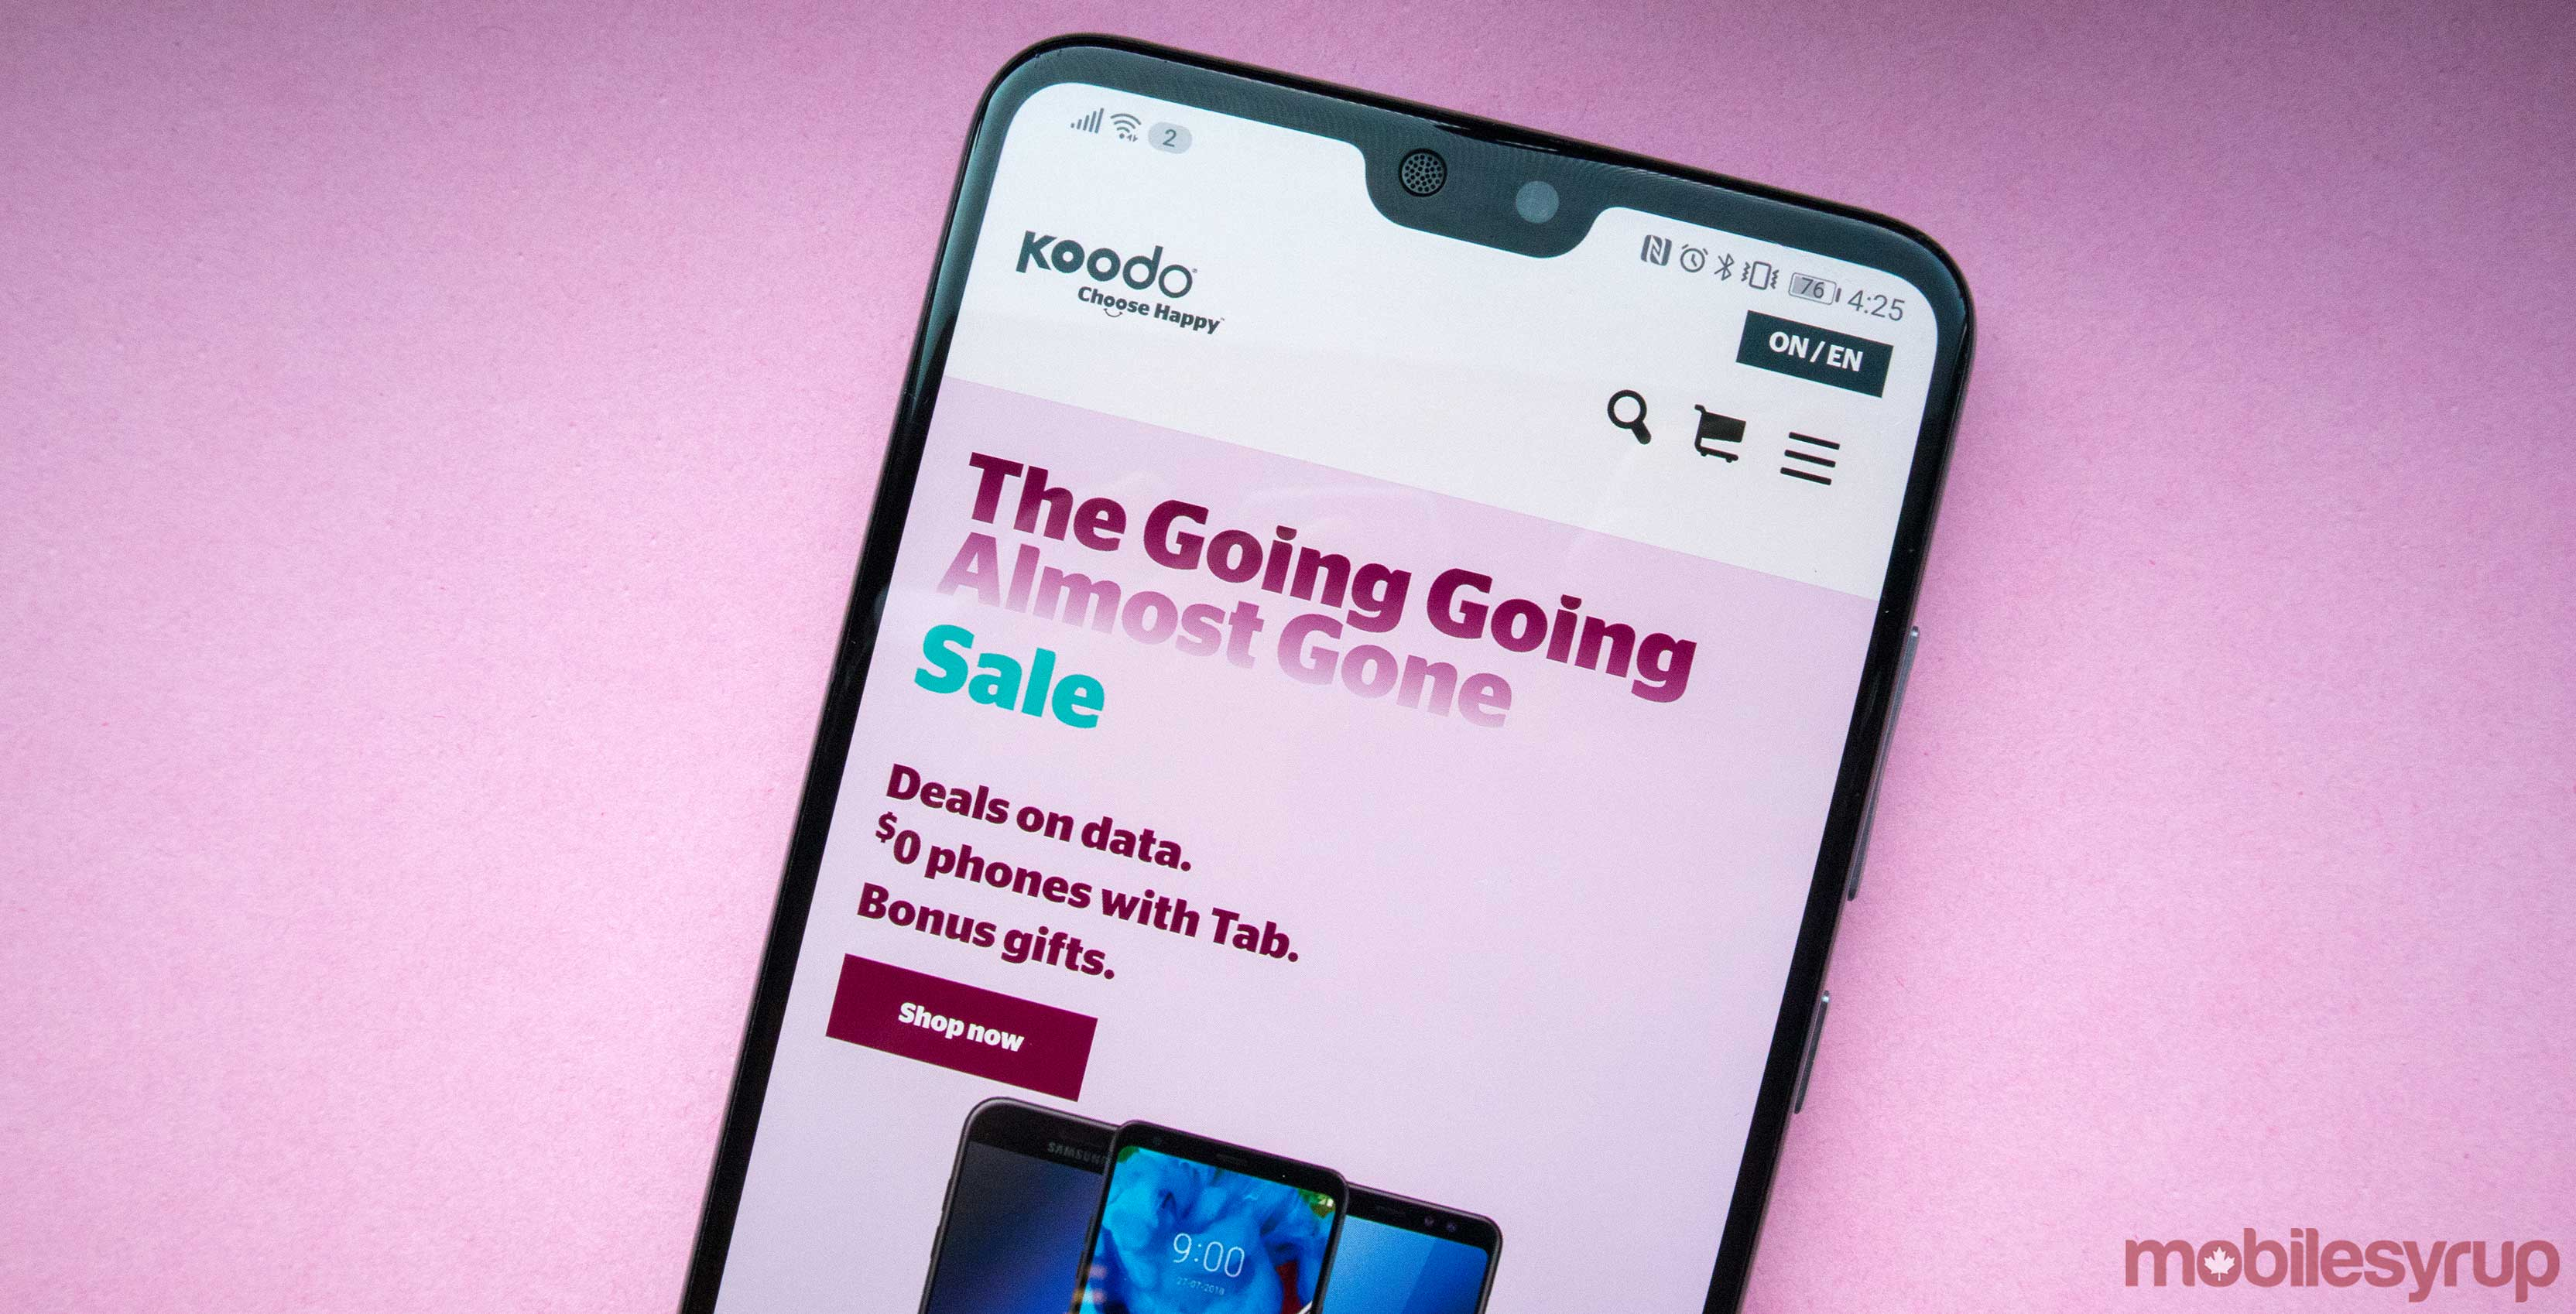 Koodo offers customers an extra 10GB of data for $15 via